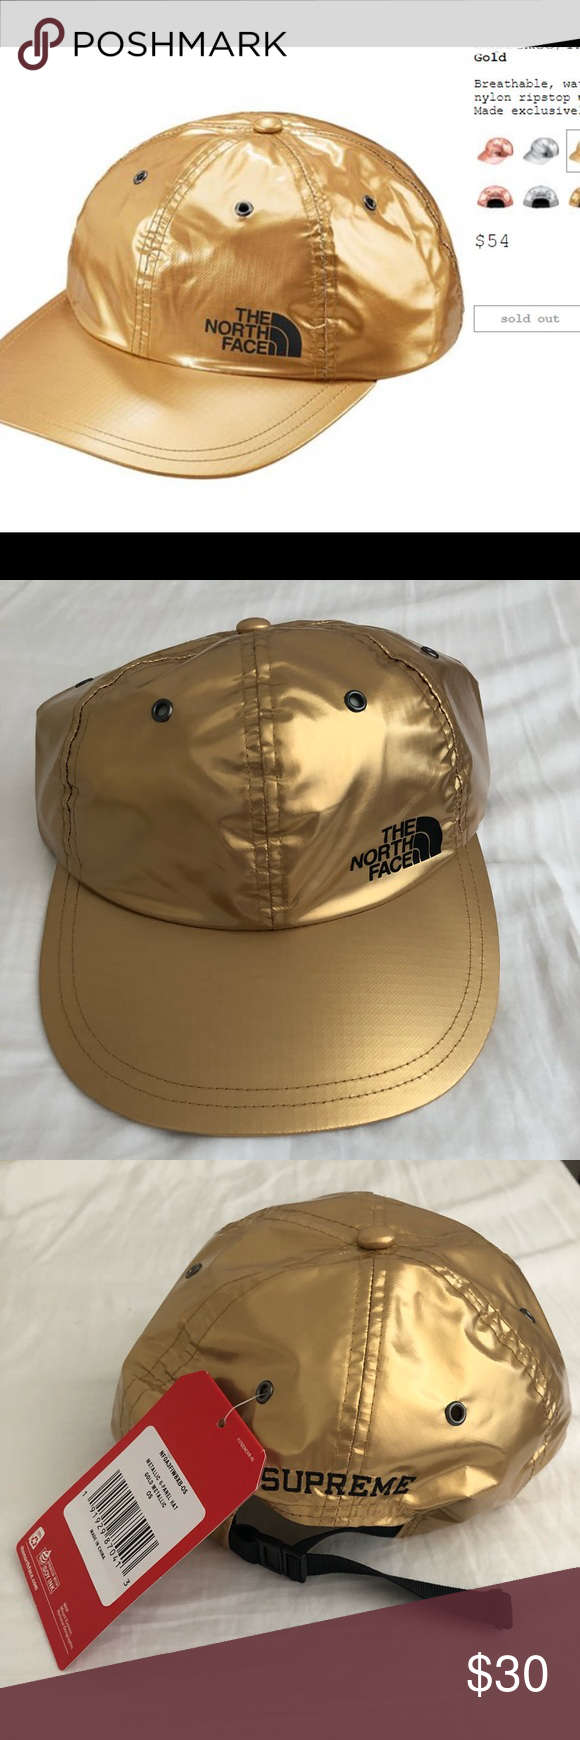 891bba011 NWT Supreme North Face Gold Metallic Six Panel Hat Brand New never ...